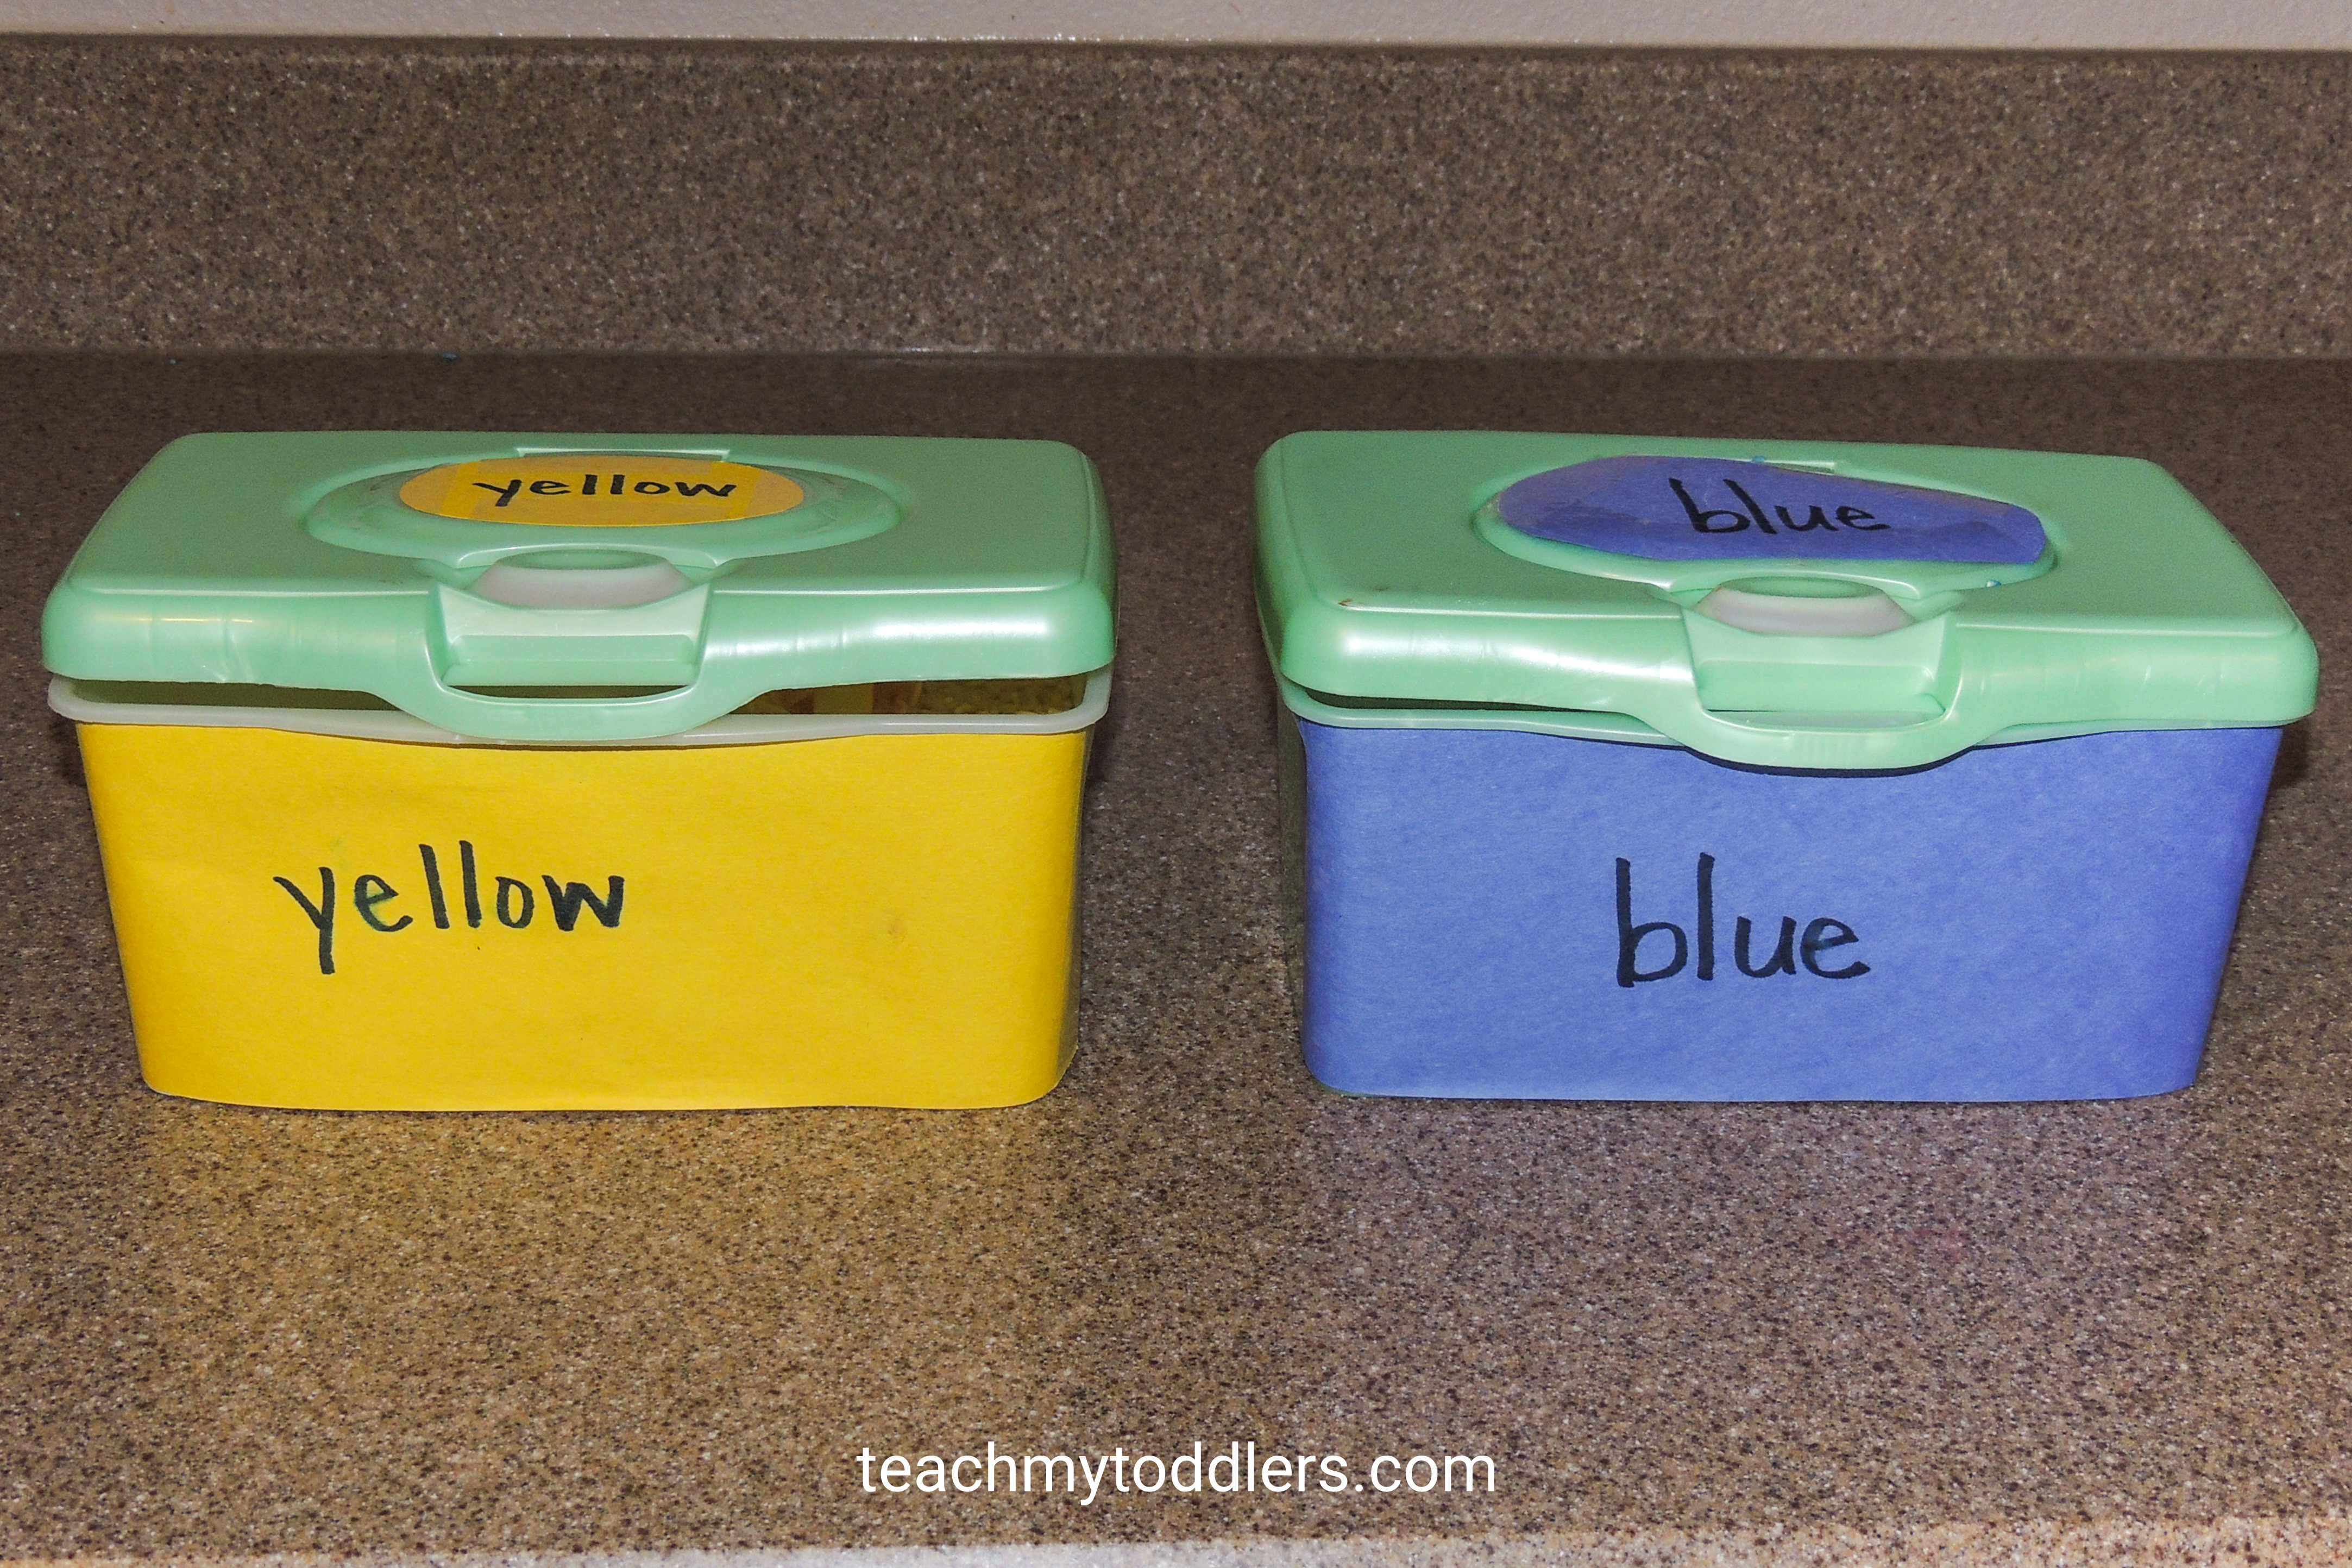 Learn how to teach your toddlers colors with these sensory bins